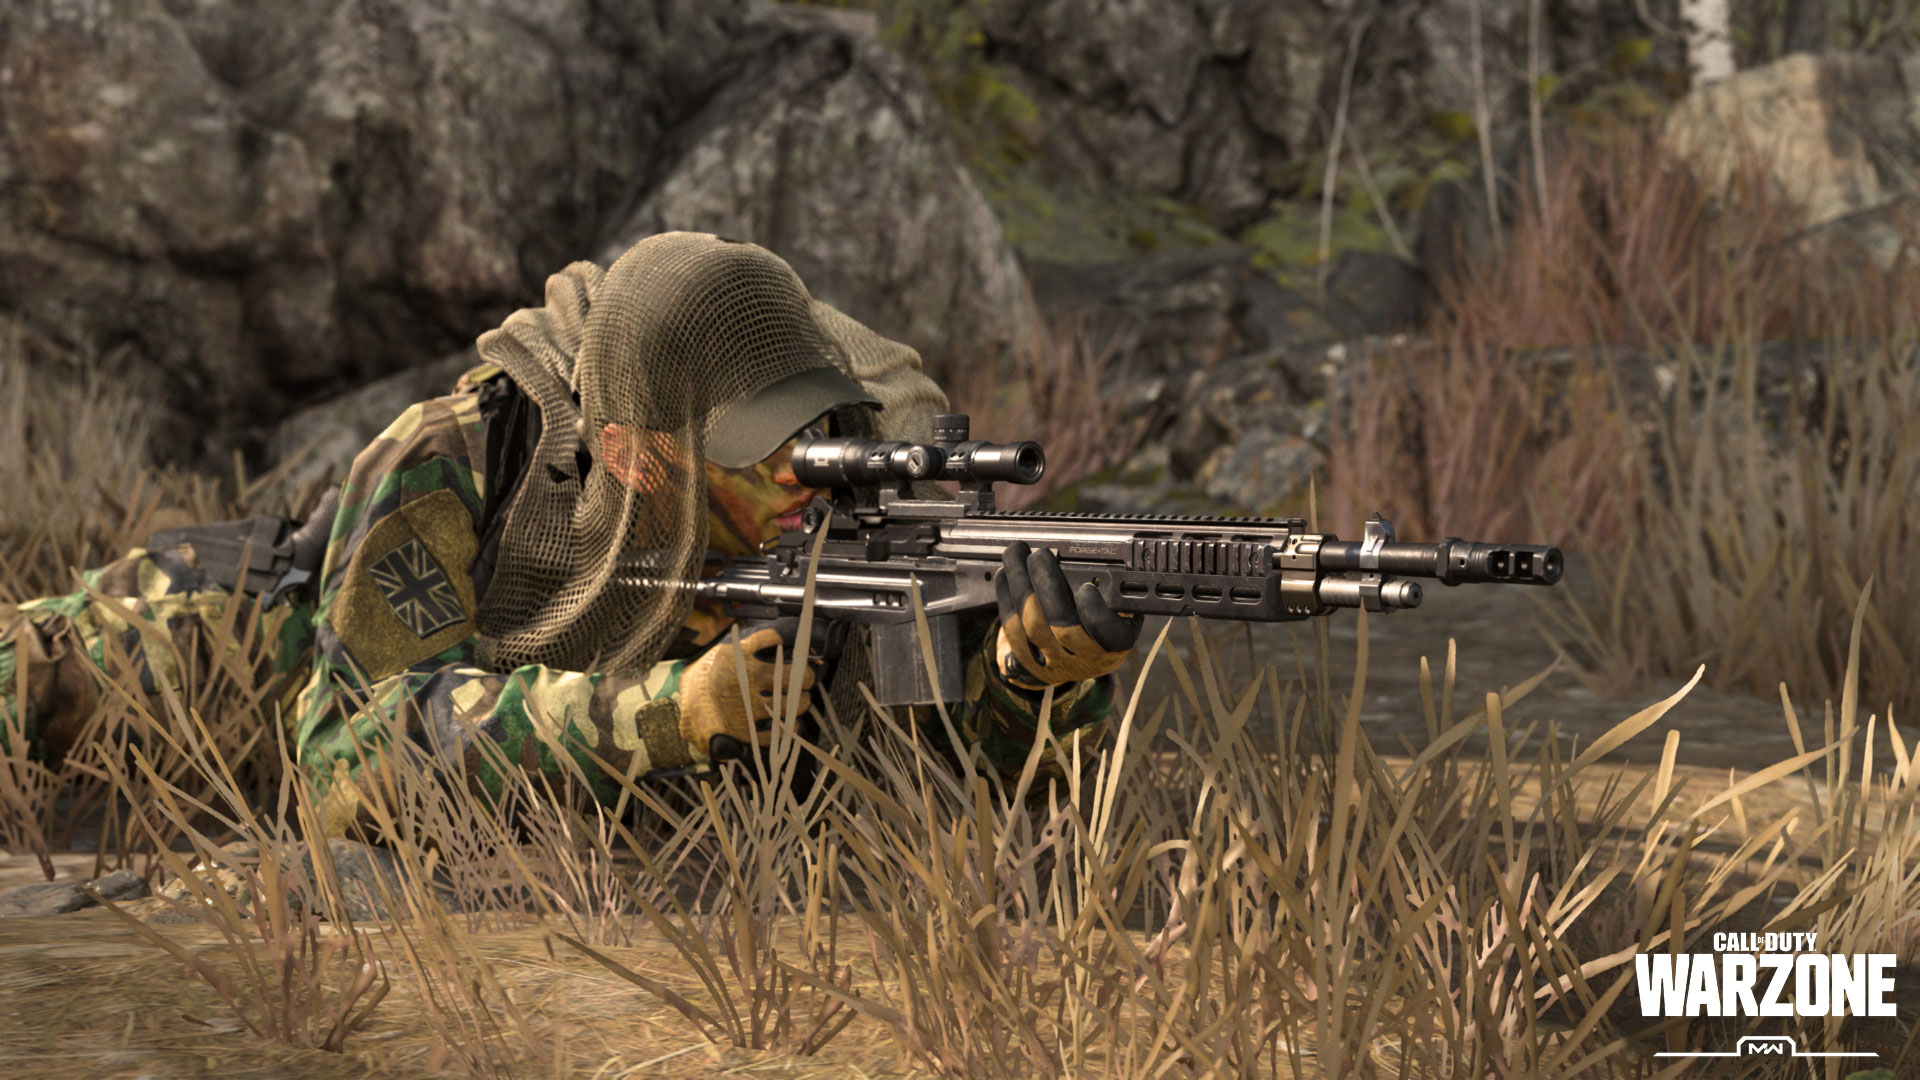 Call of Duty Warzone Sniper